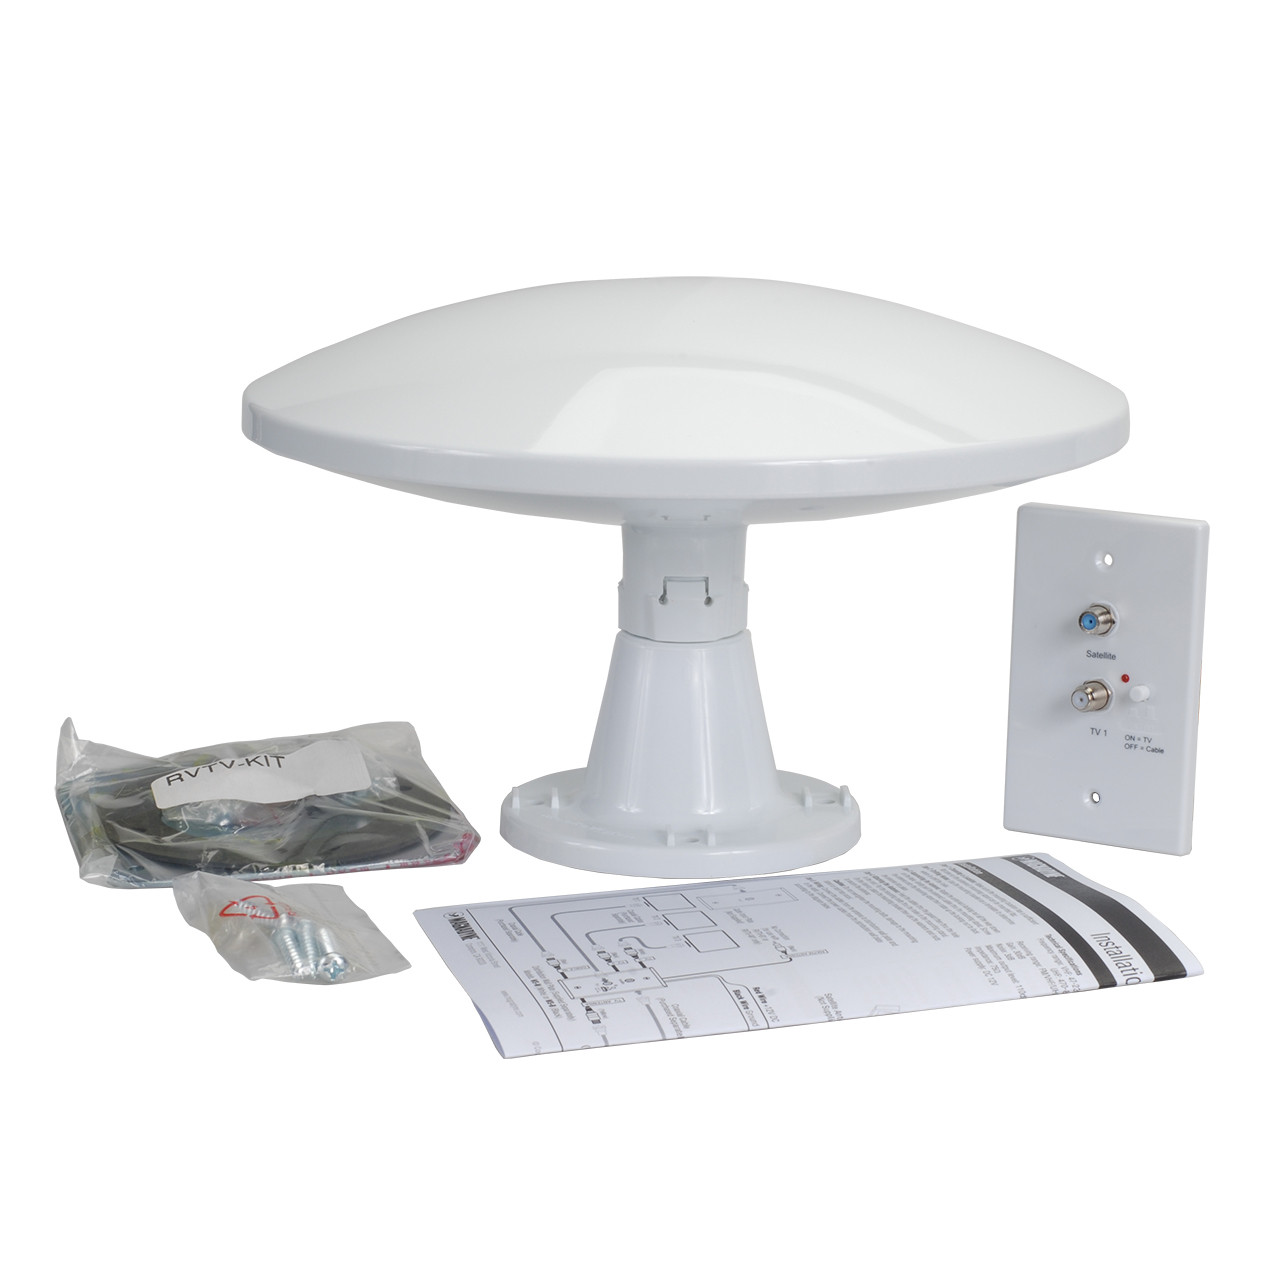 Magnadyne Roof Mount Omni-Directional Antenna